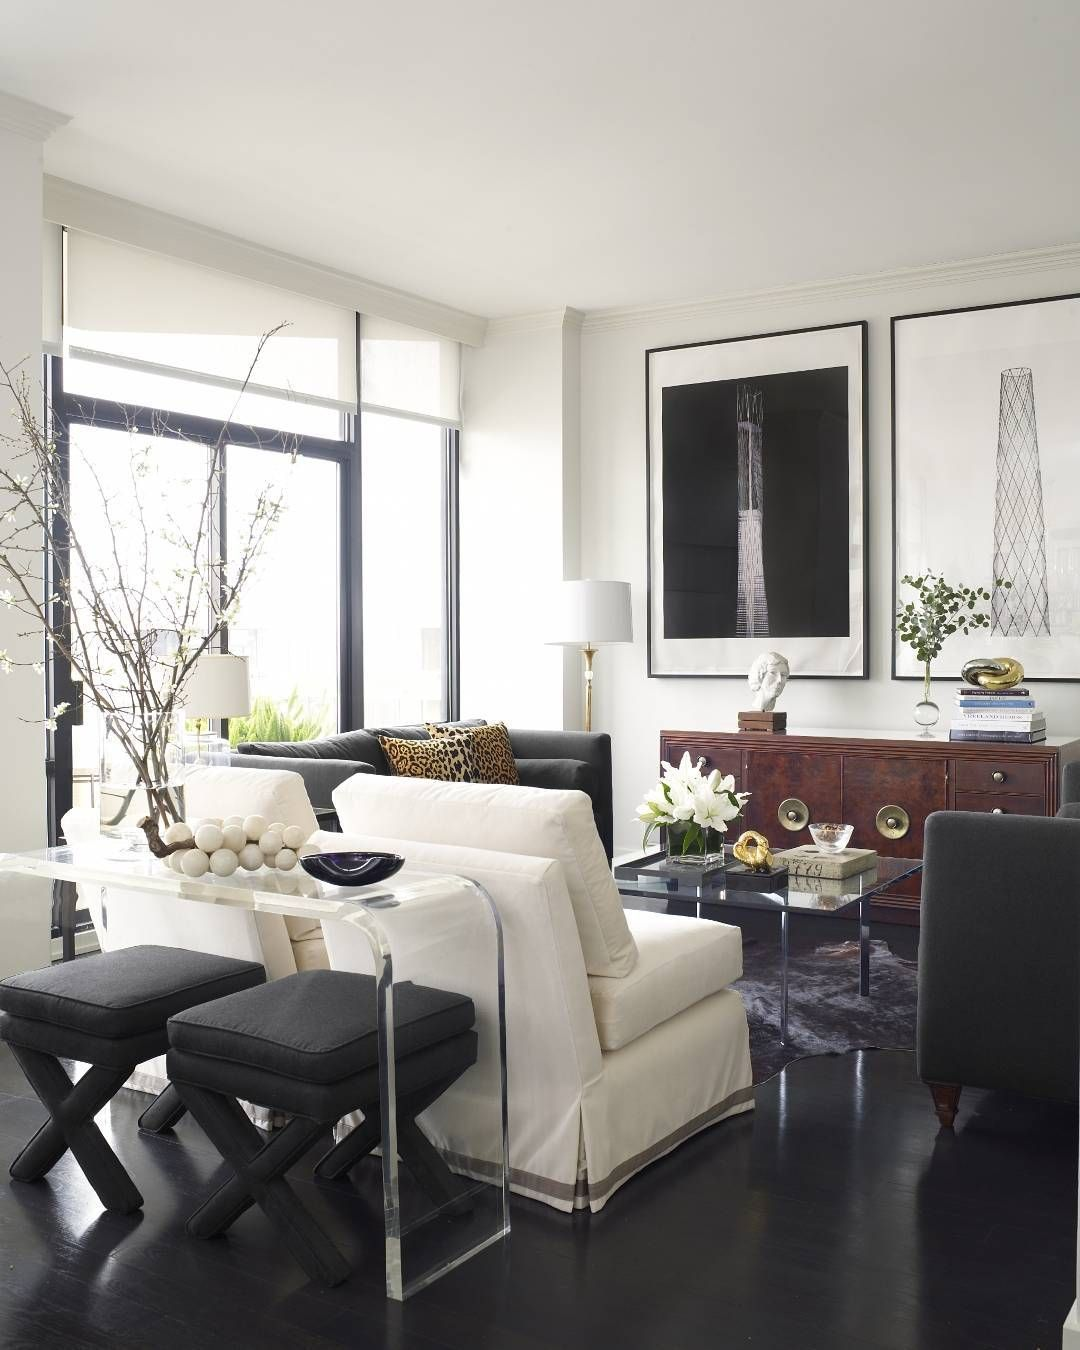 Lovely Vintage Living Room Ideas With Glamour Furniture: For Those Who Love Swoon-worthy Interiors With A Modern